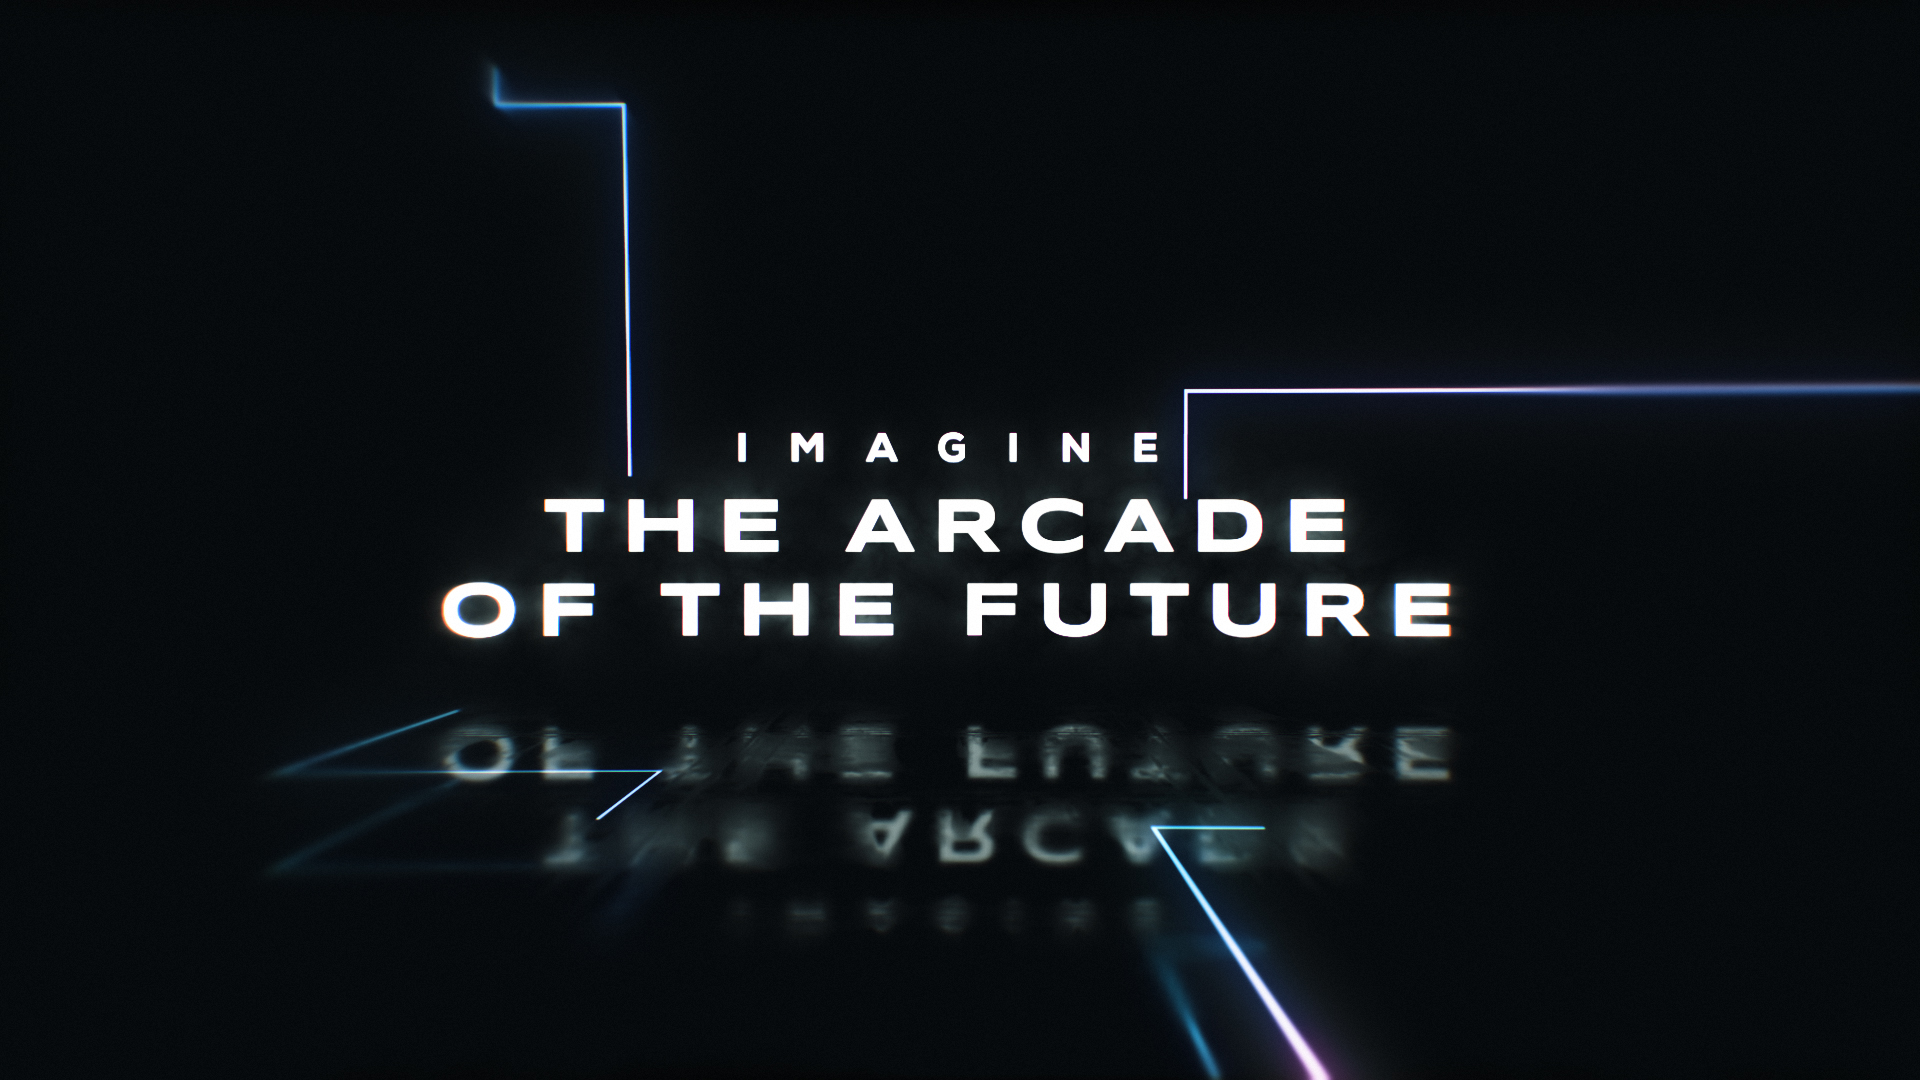 video screenshot that reads 'image the arcade of the future'